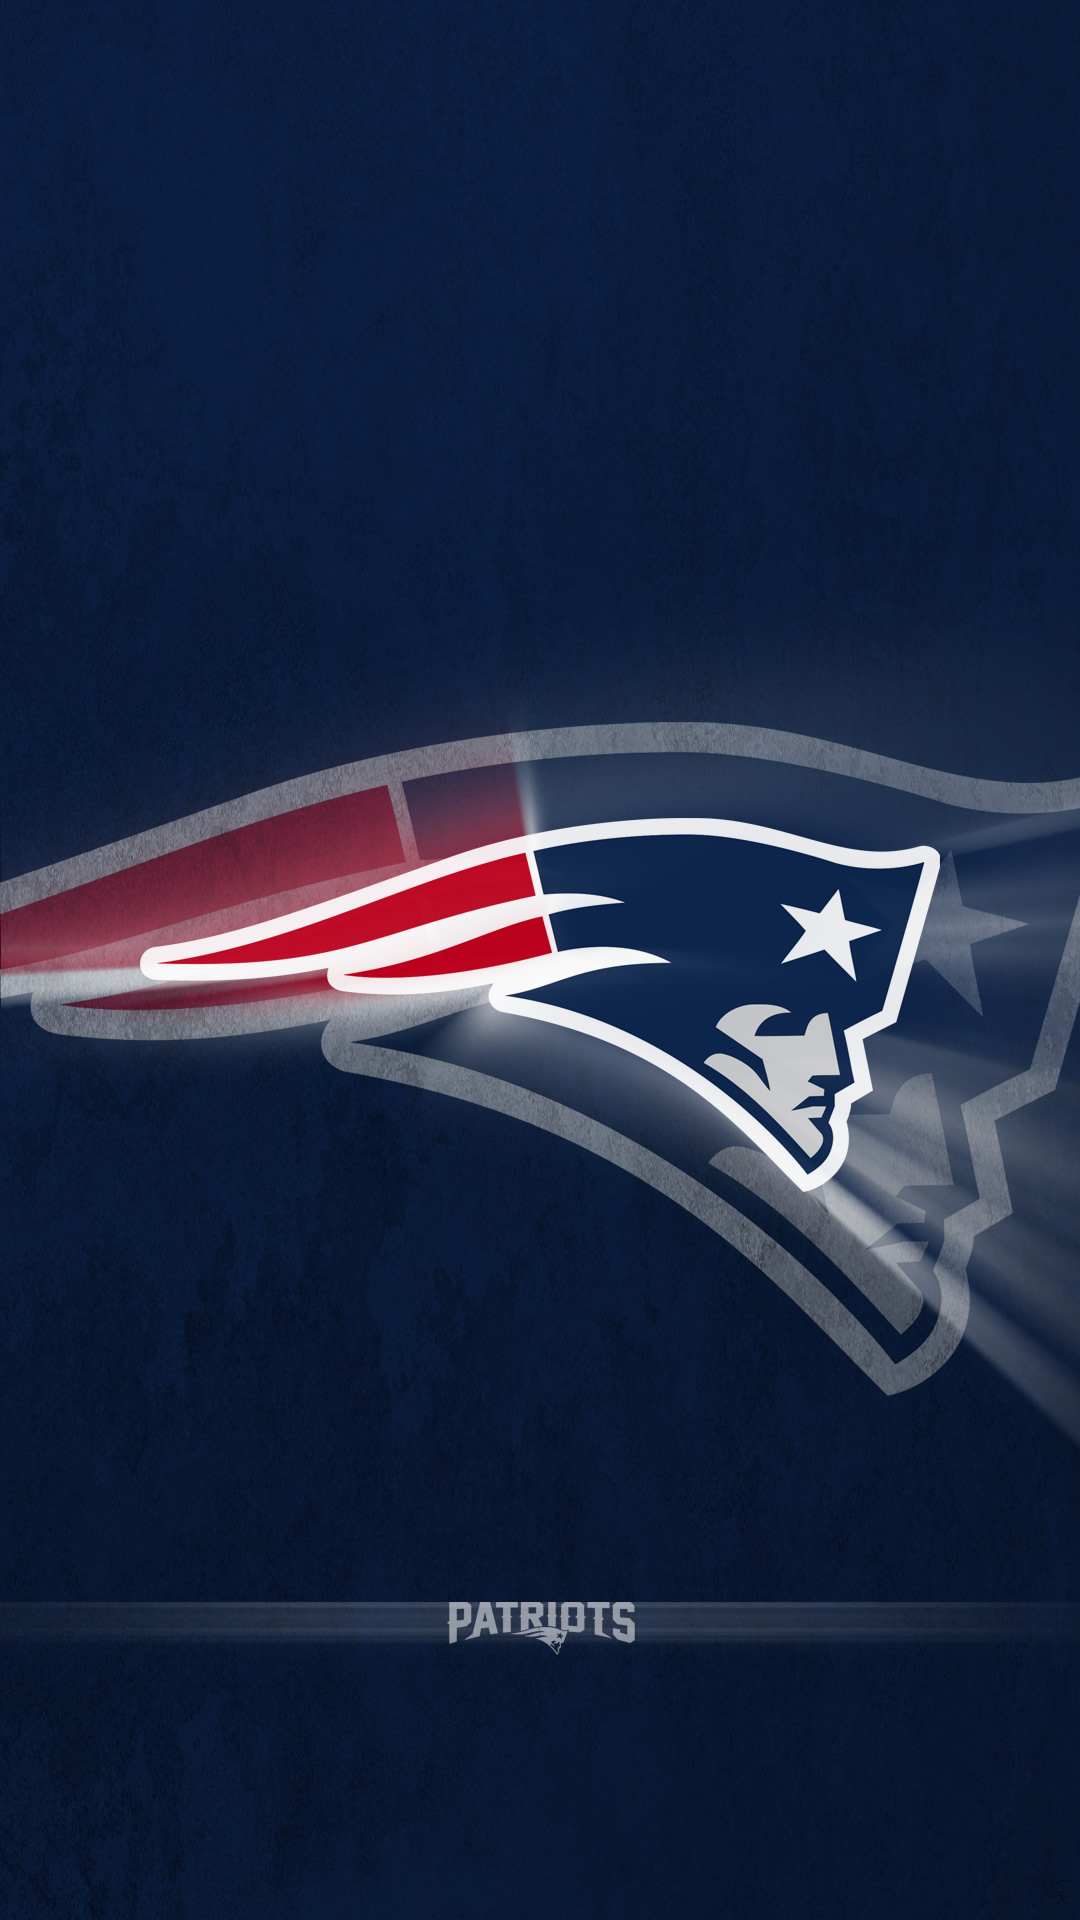 NFL Wallpapers - Free Download NFL New England Patriots HD Wallpapers ...